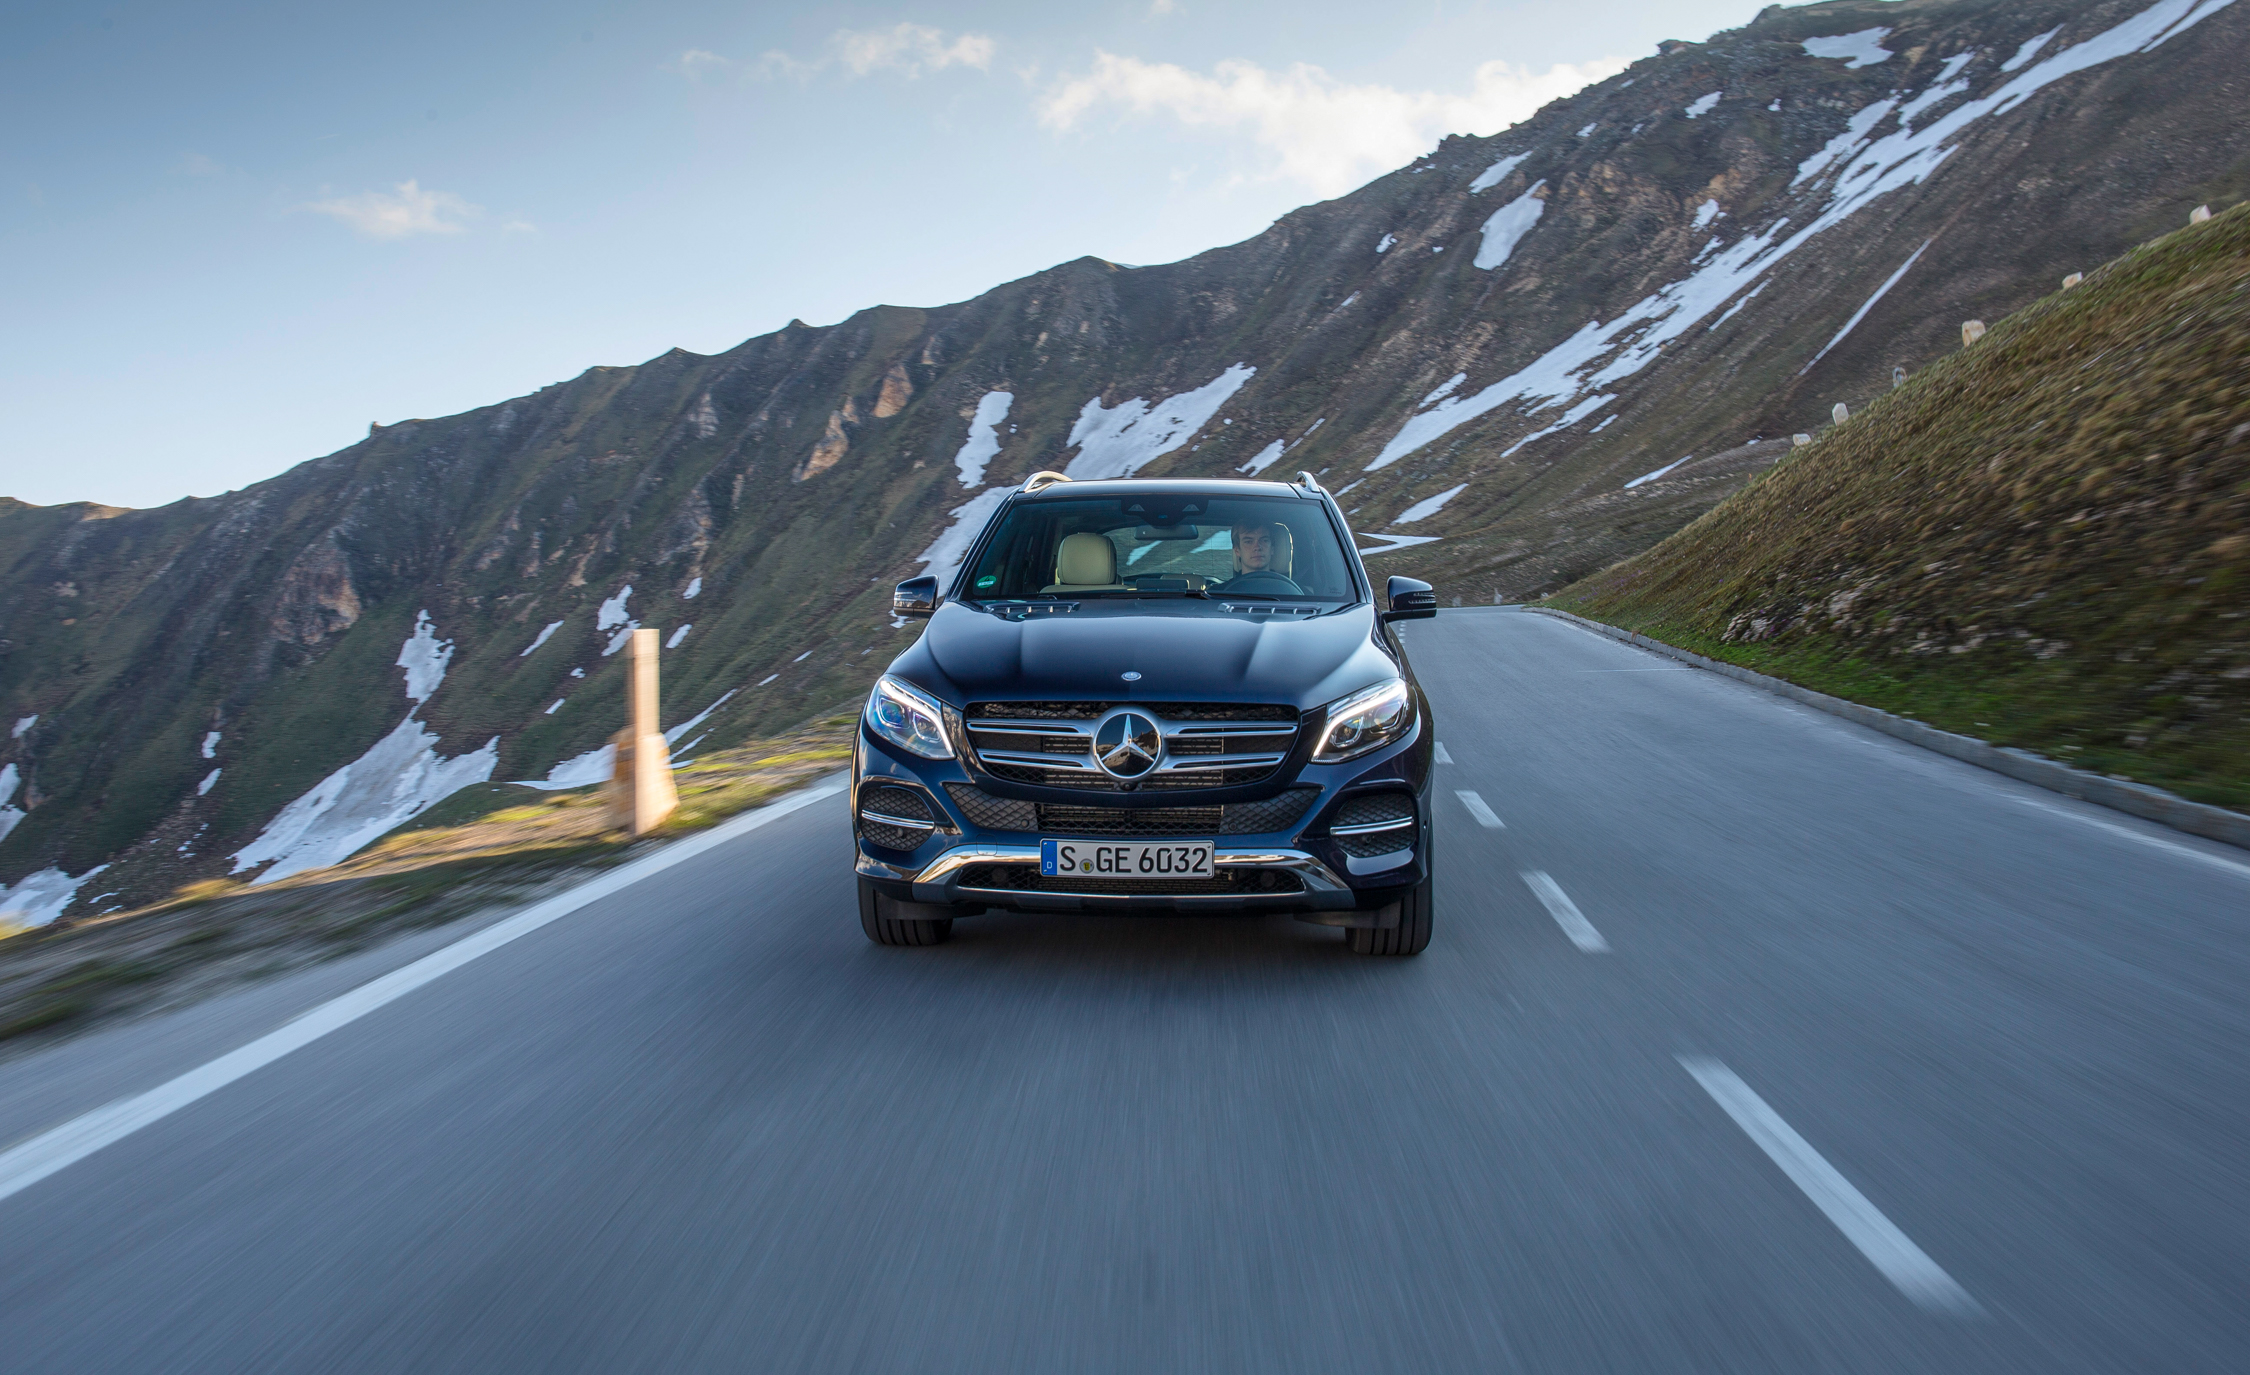 2016 Mercedes Benz GLE250d 4MATIC (Euro Spec) (Photo 11 of 43)